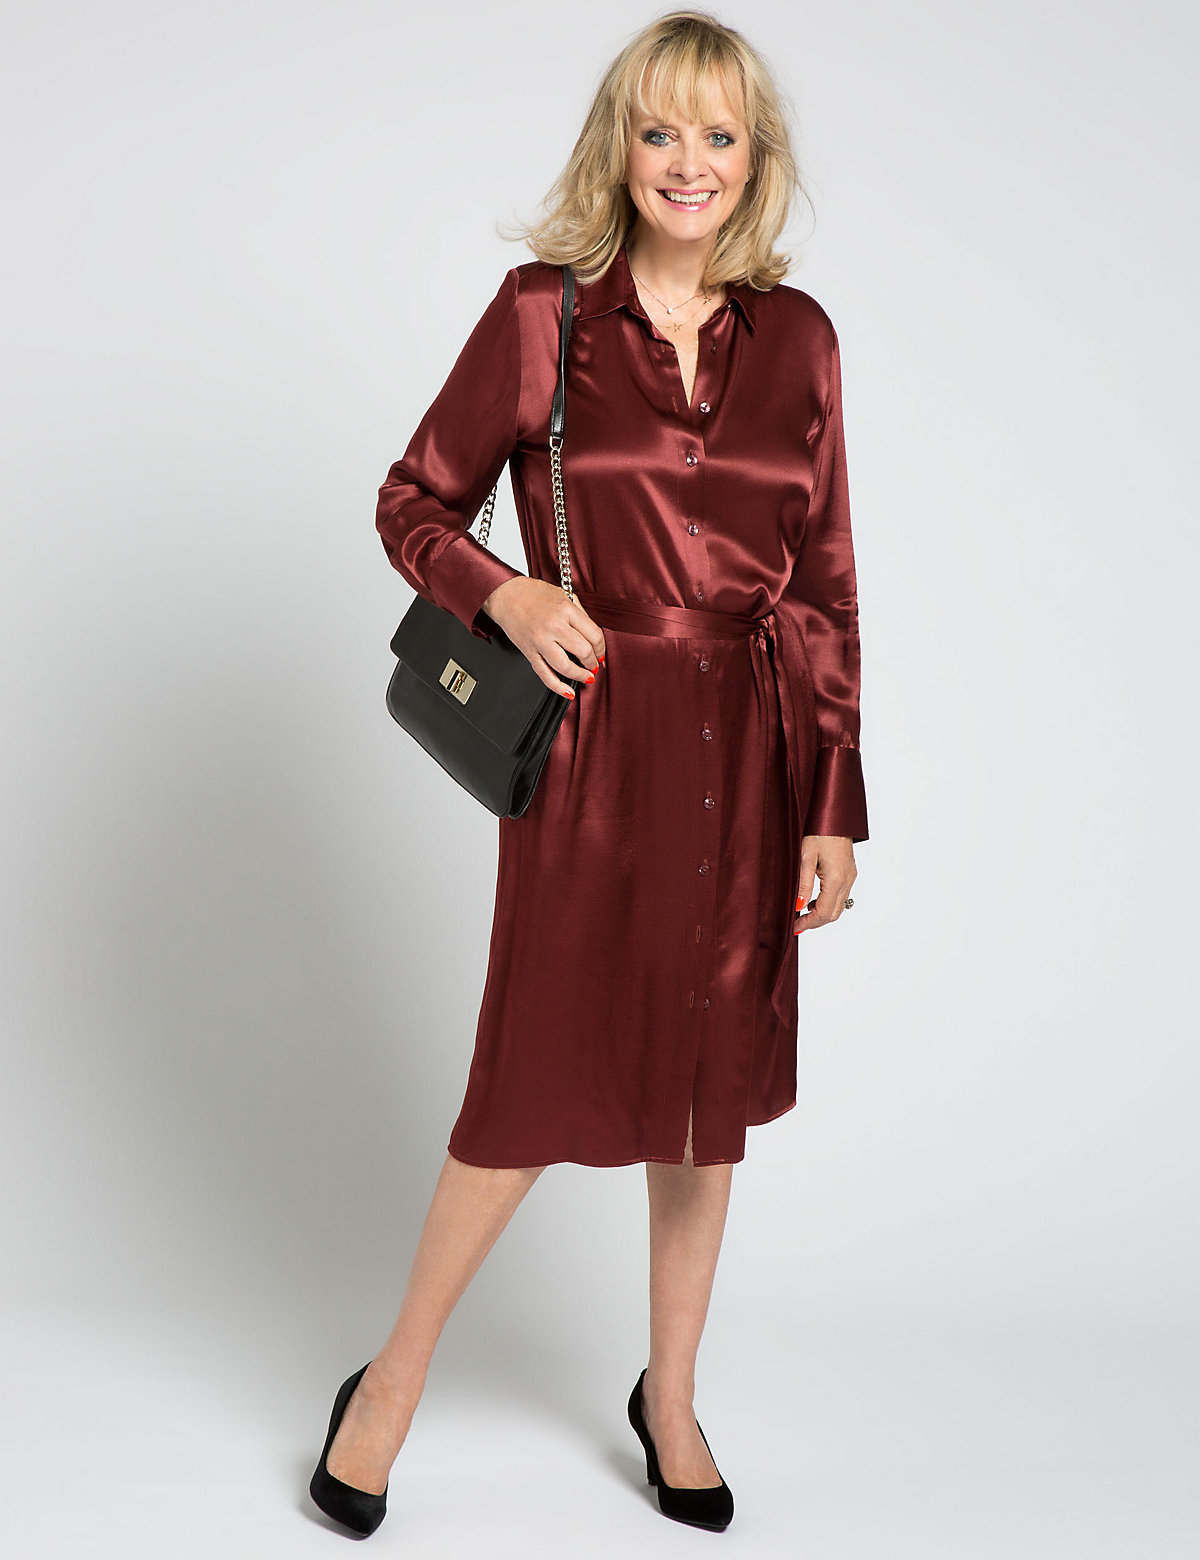 Designed by Twiggy Long Sleeve Shirt Dress with Belt